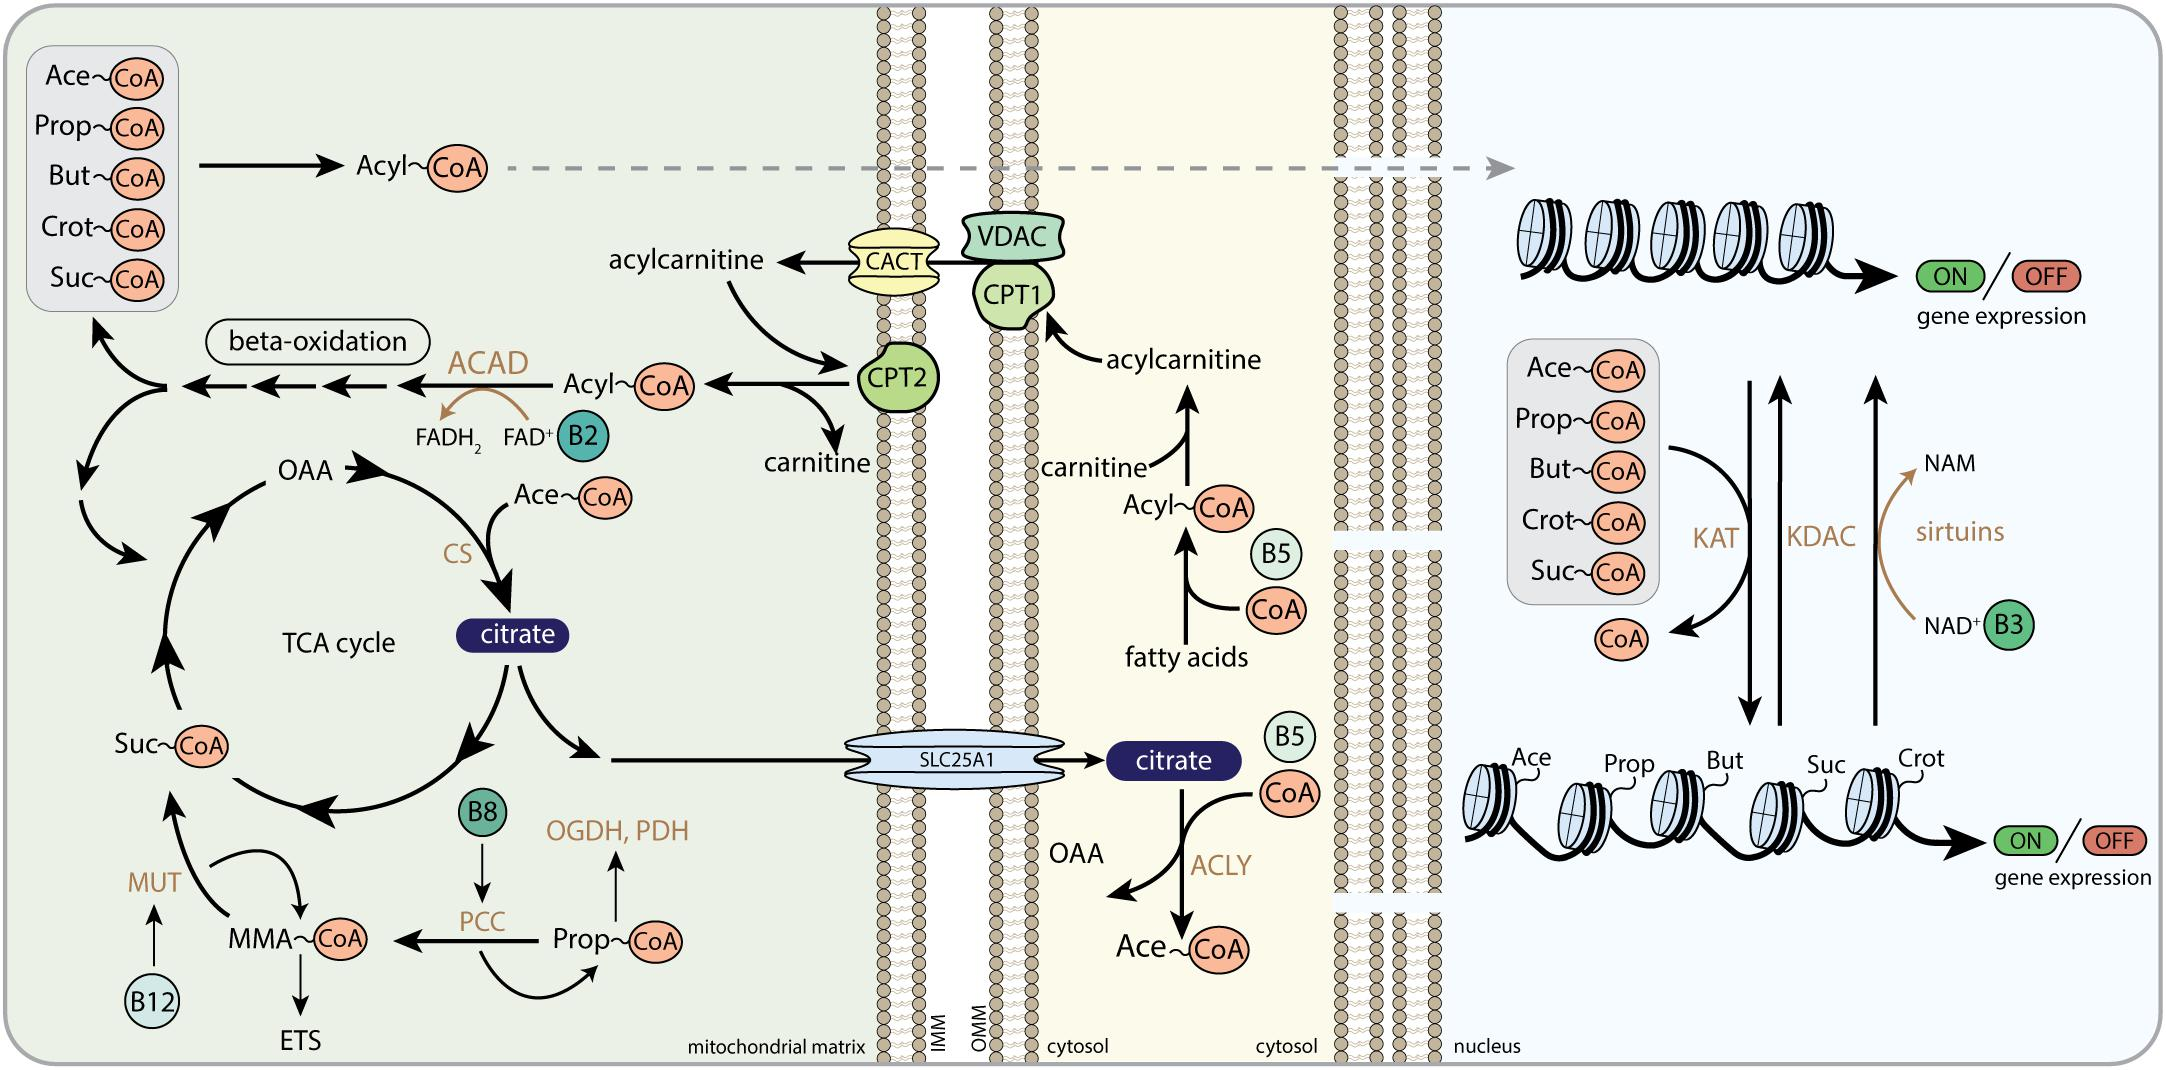 Frontiers | Mito-Nuclear Communication by Mitochondrial